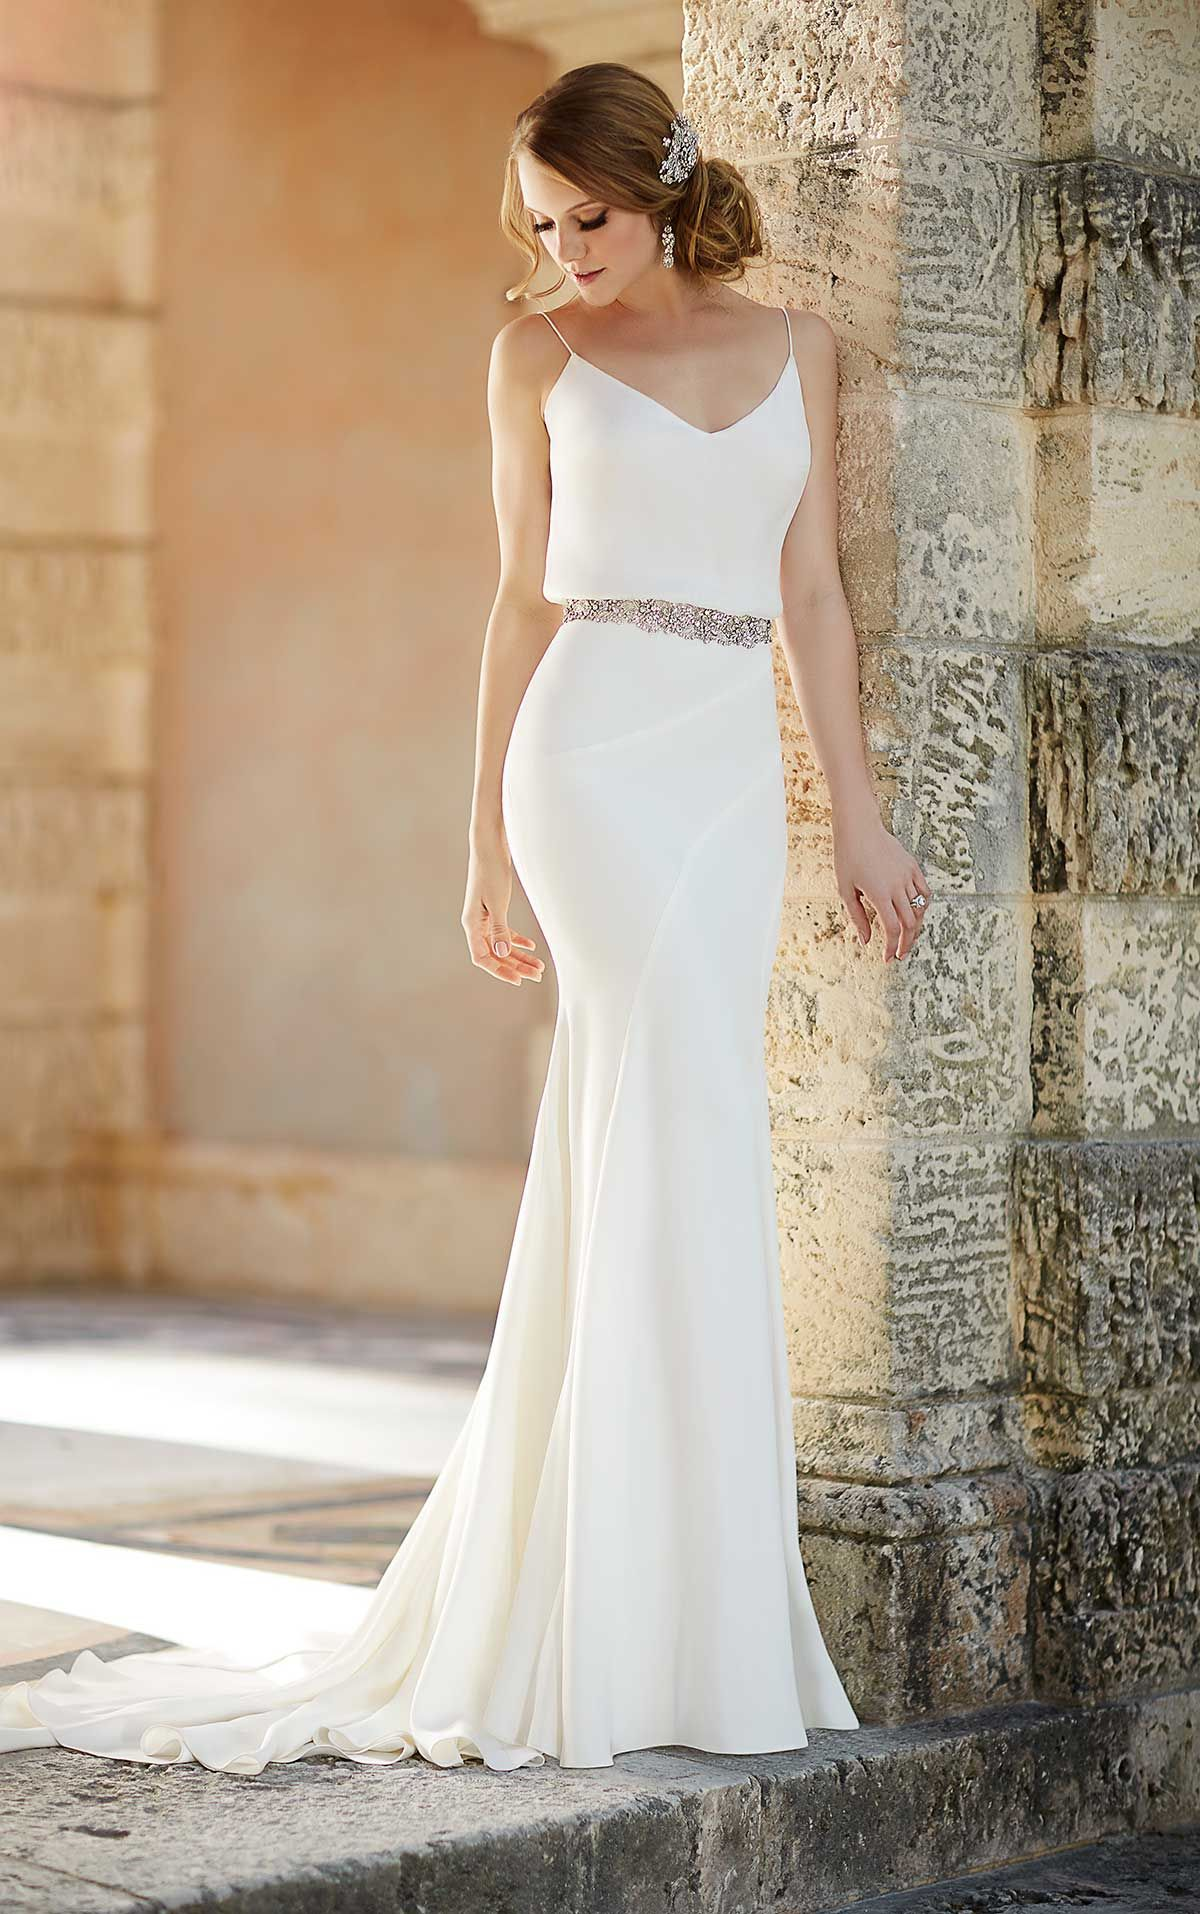 93f4c1a88e This '20s-inspired beach wedding dress from the Martina Liana collection  features a silk Moroccan skirt paired with a sophisticated blouse top in  Parisian ...